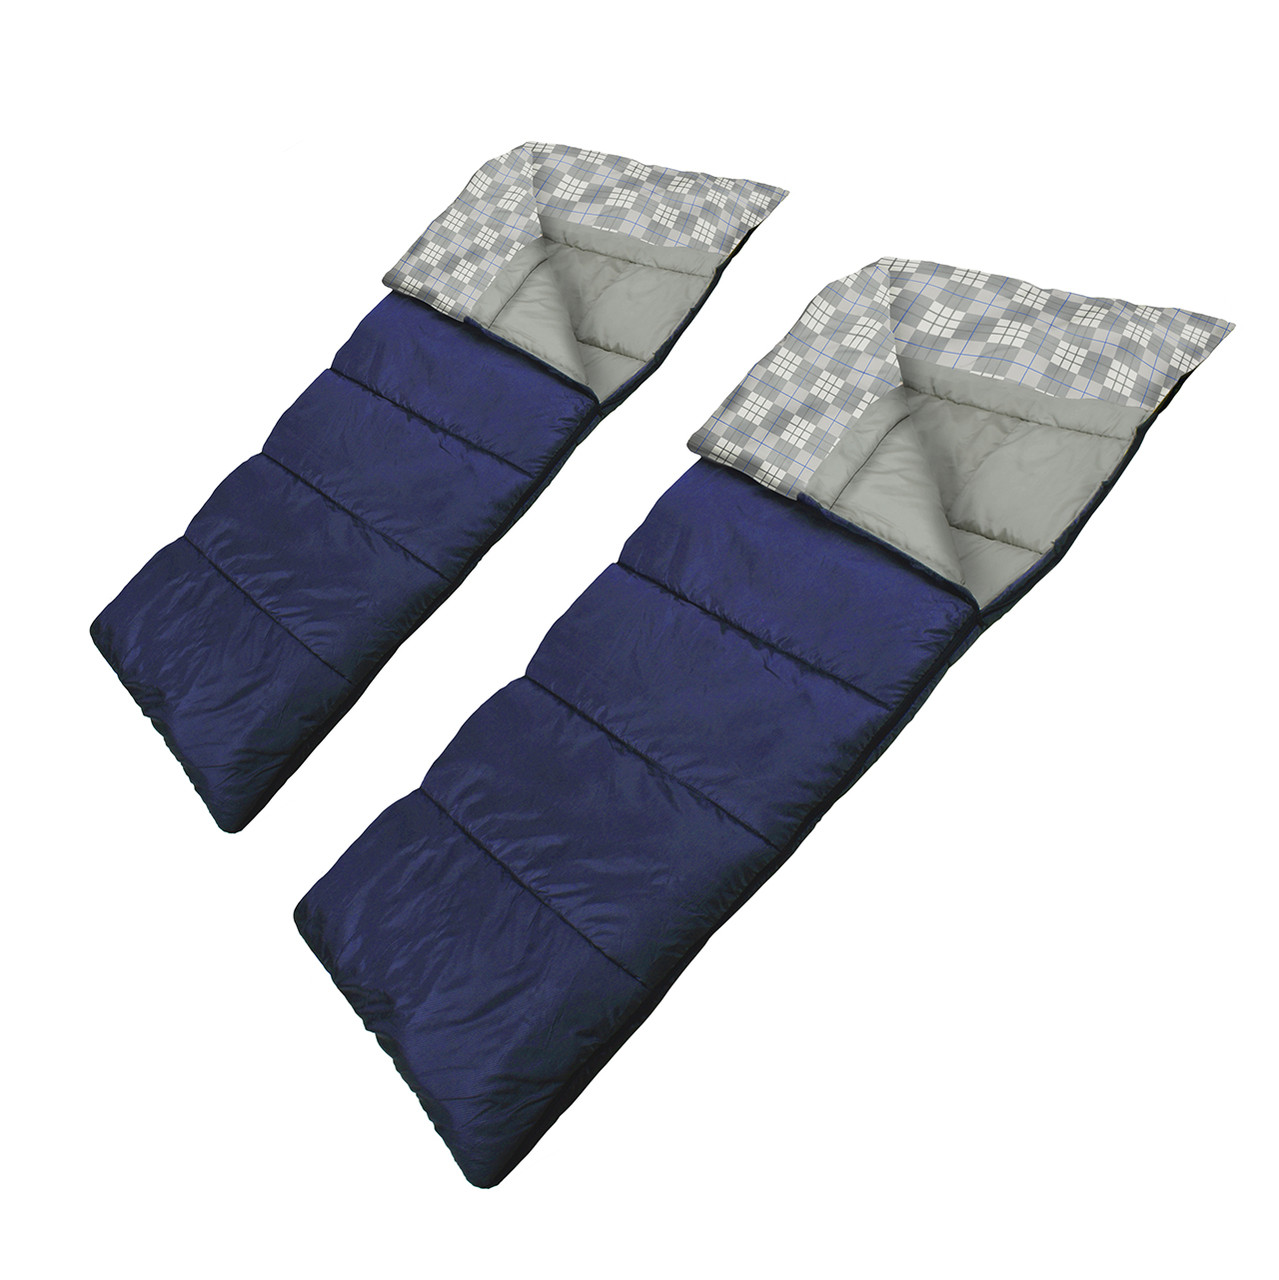 Wenzel Ozzy & Harriet 40 degree sleeping bag, blue, not zipped together both laying flat with the corners partially folded over showing the gray/white plaid and gray interior of the sleeping bags